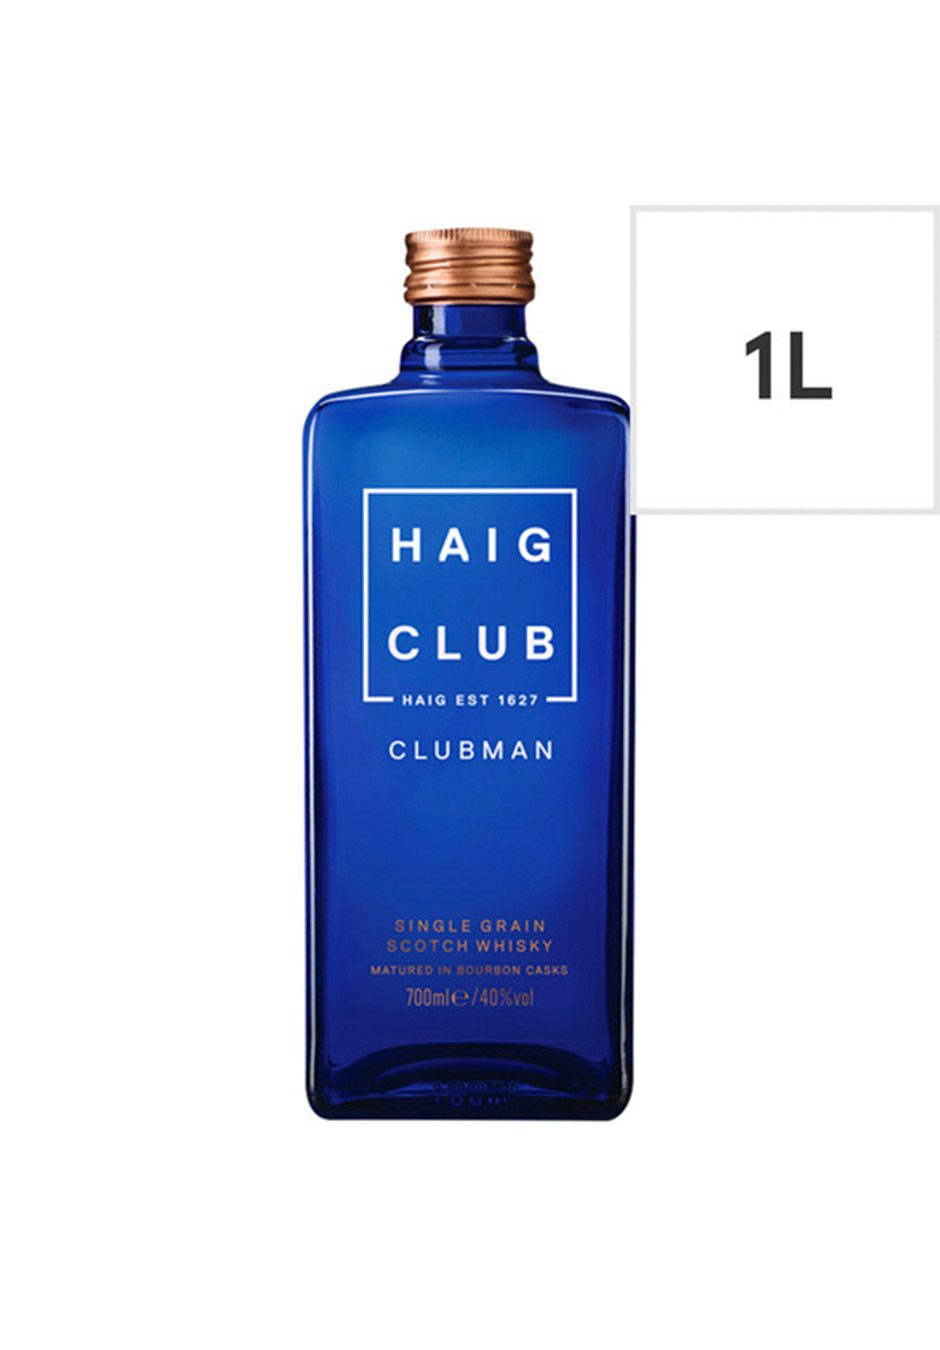 Haig Club Whisky | 1L Single Grain Scotch | KeiCo Drinks